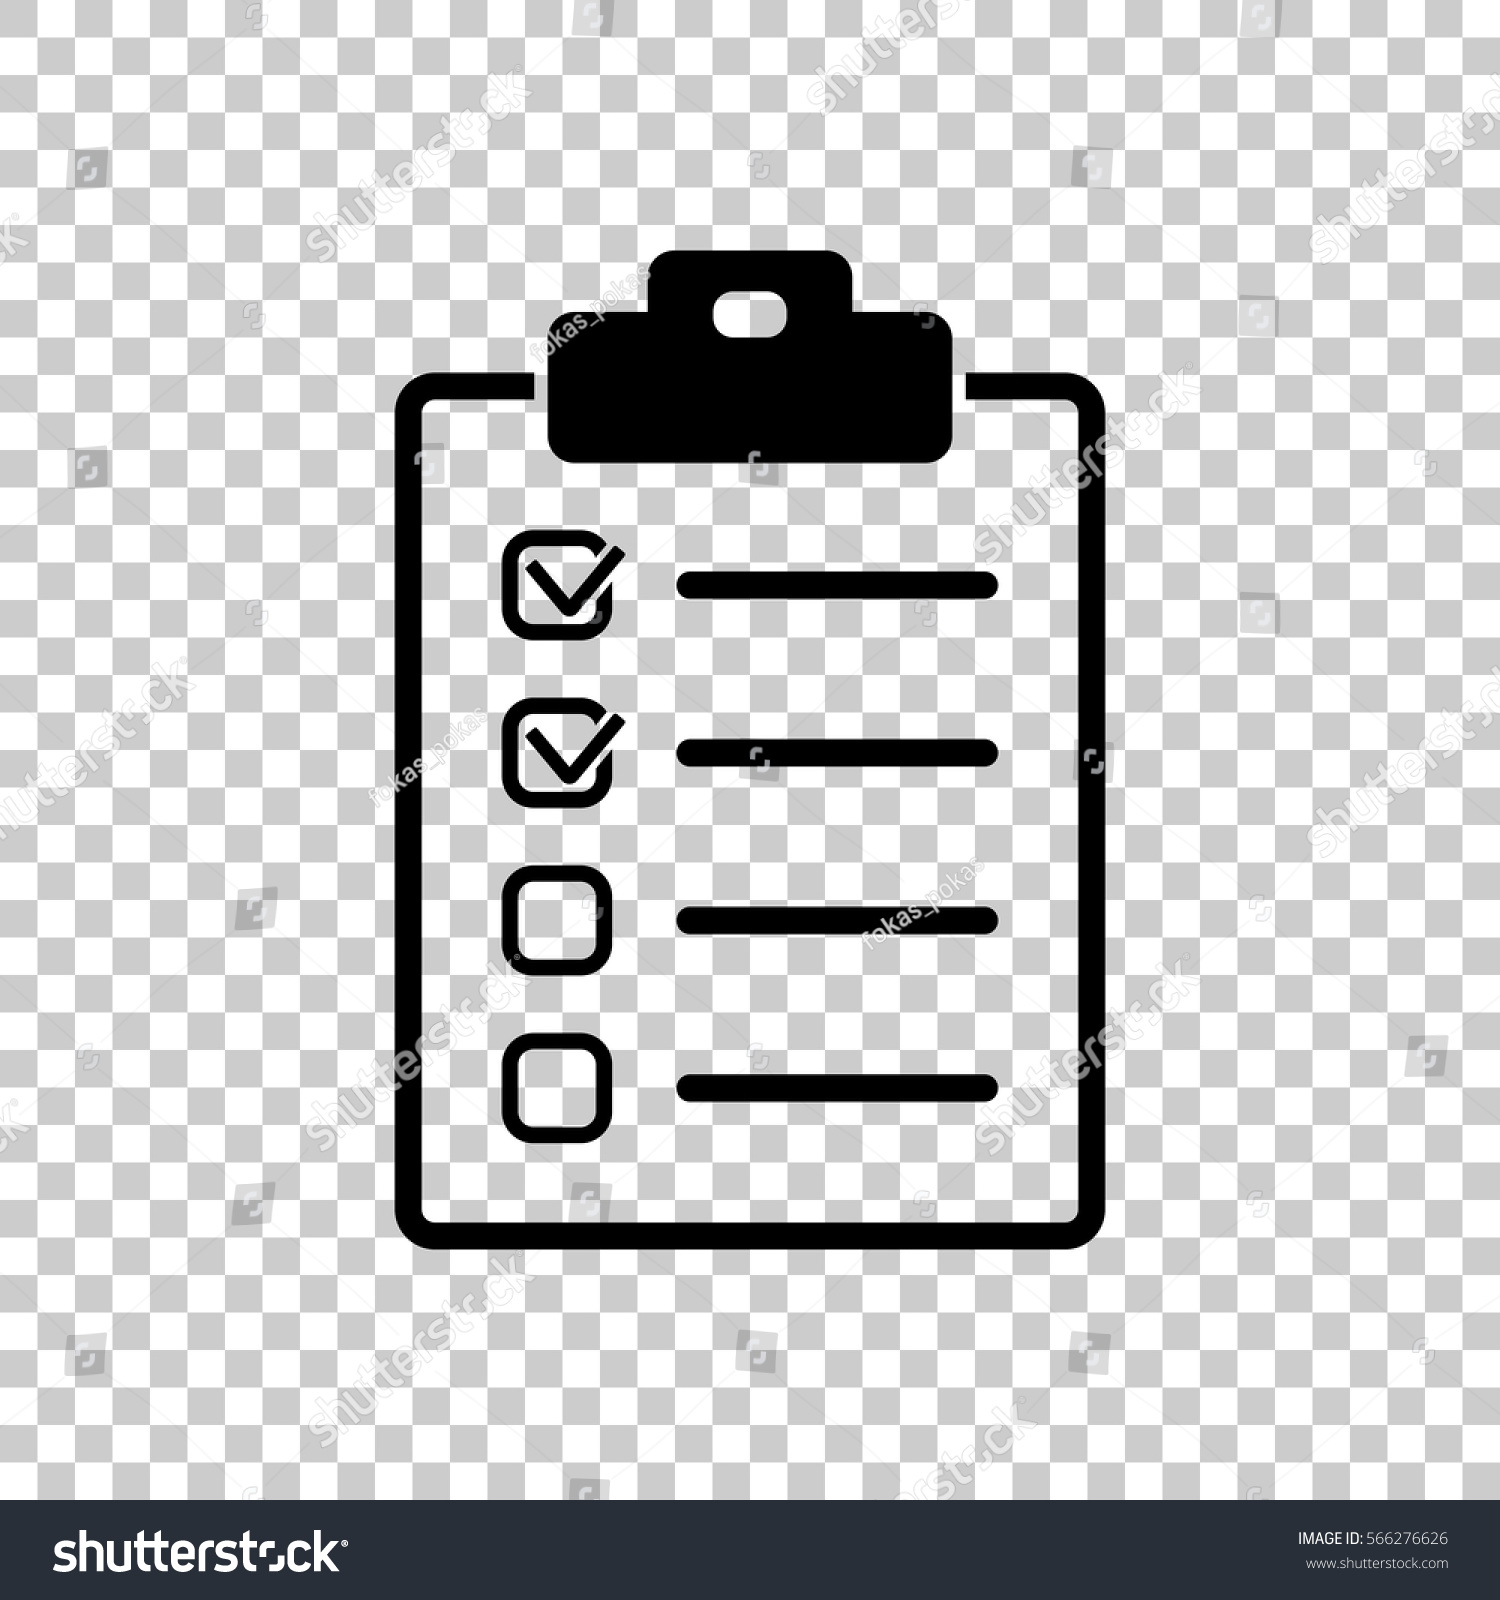 checklist icon black icon on transparent stock vector (royalty free